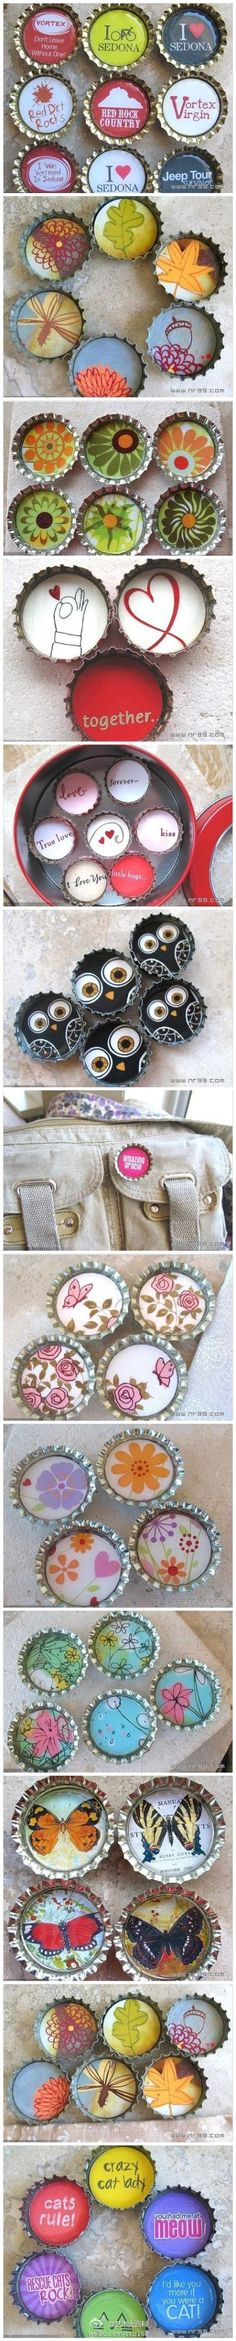 Reuse and decorate bottle caps.